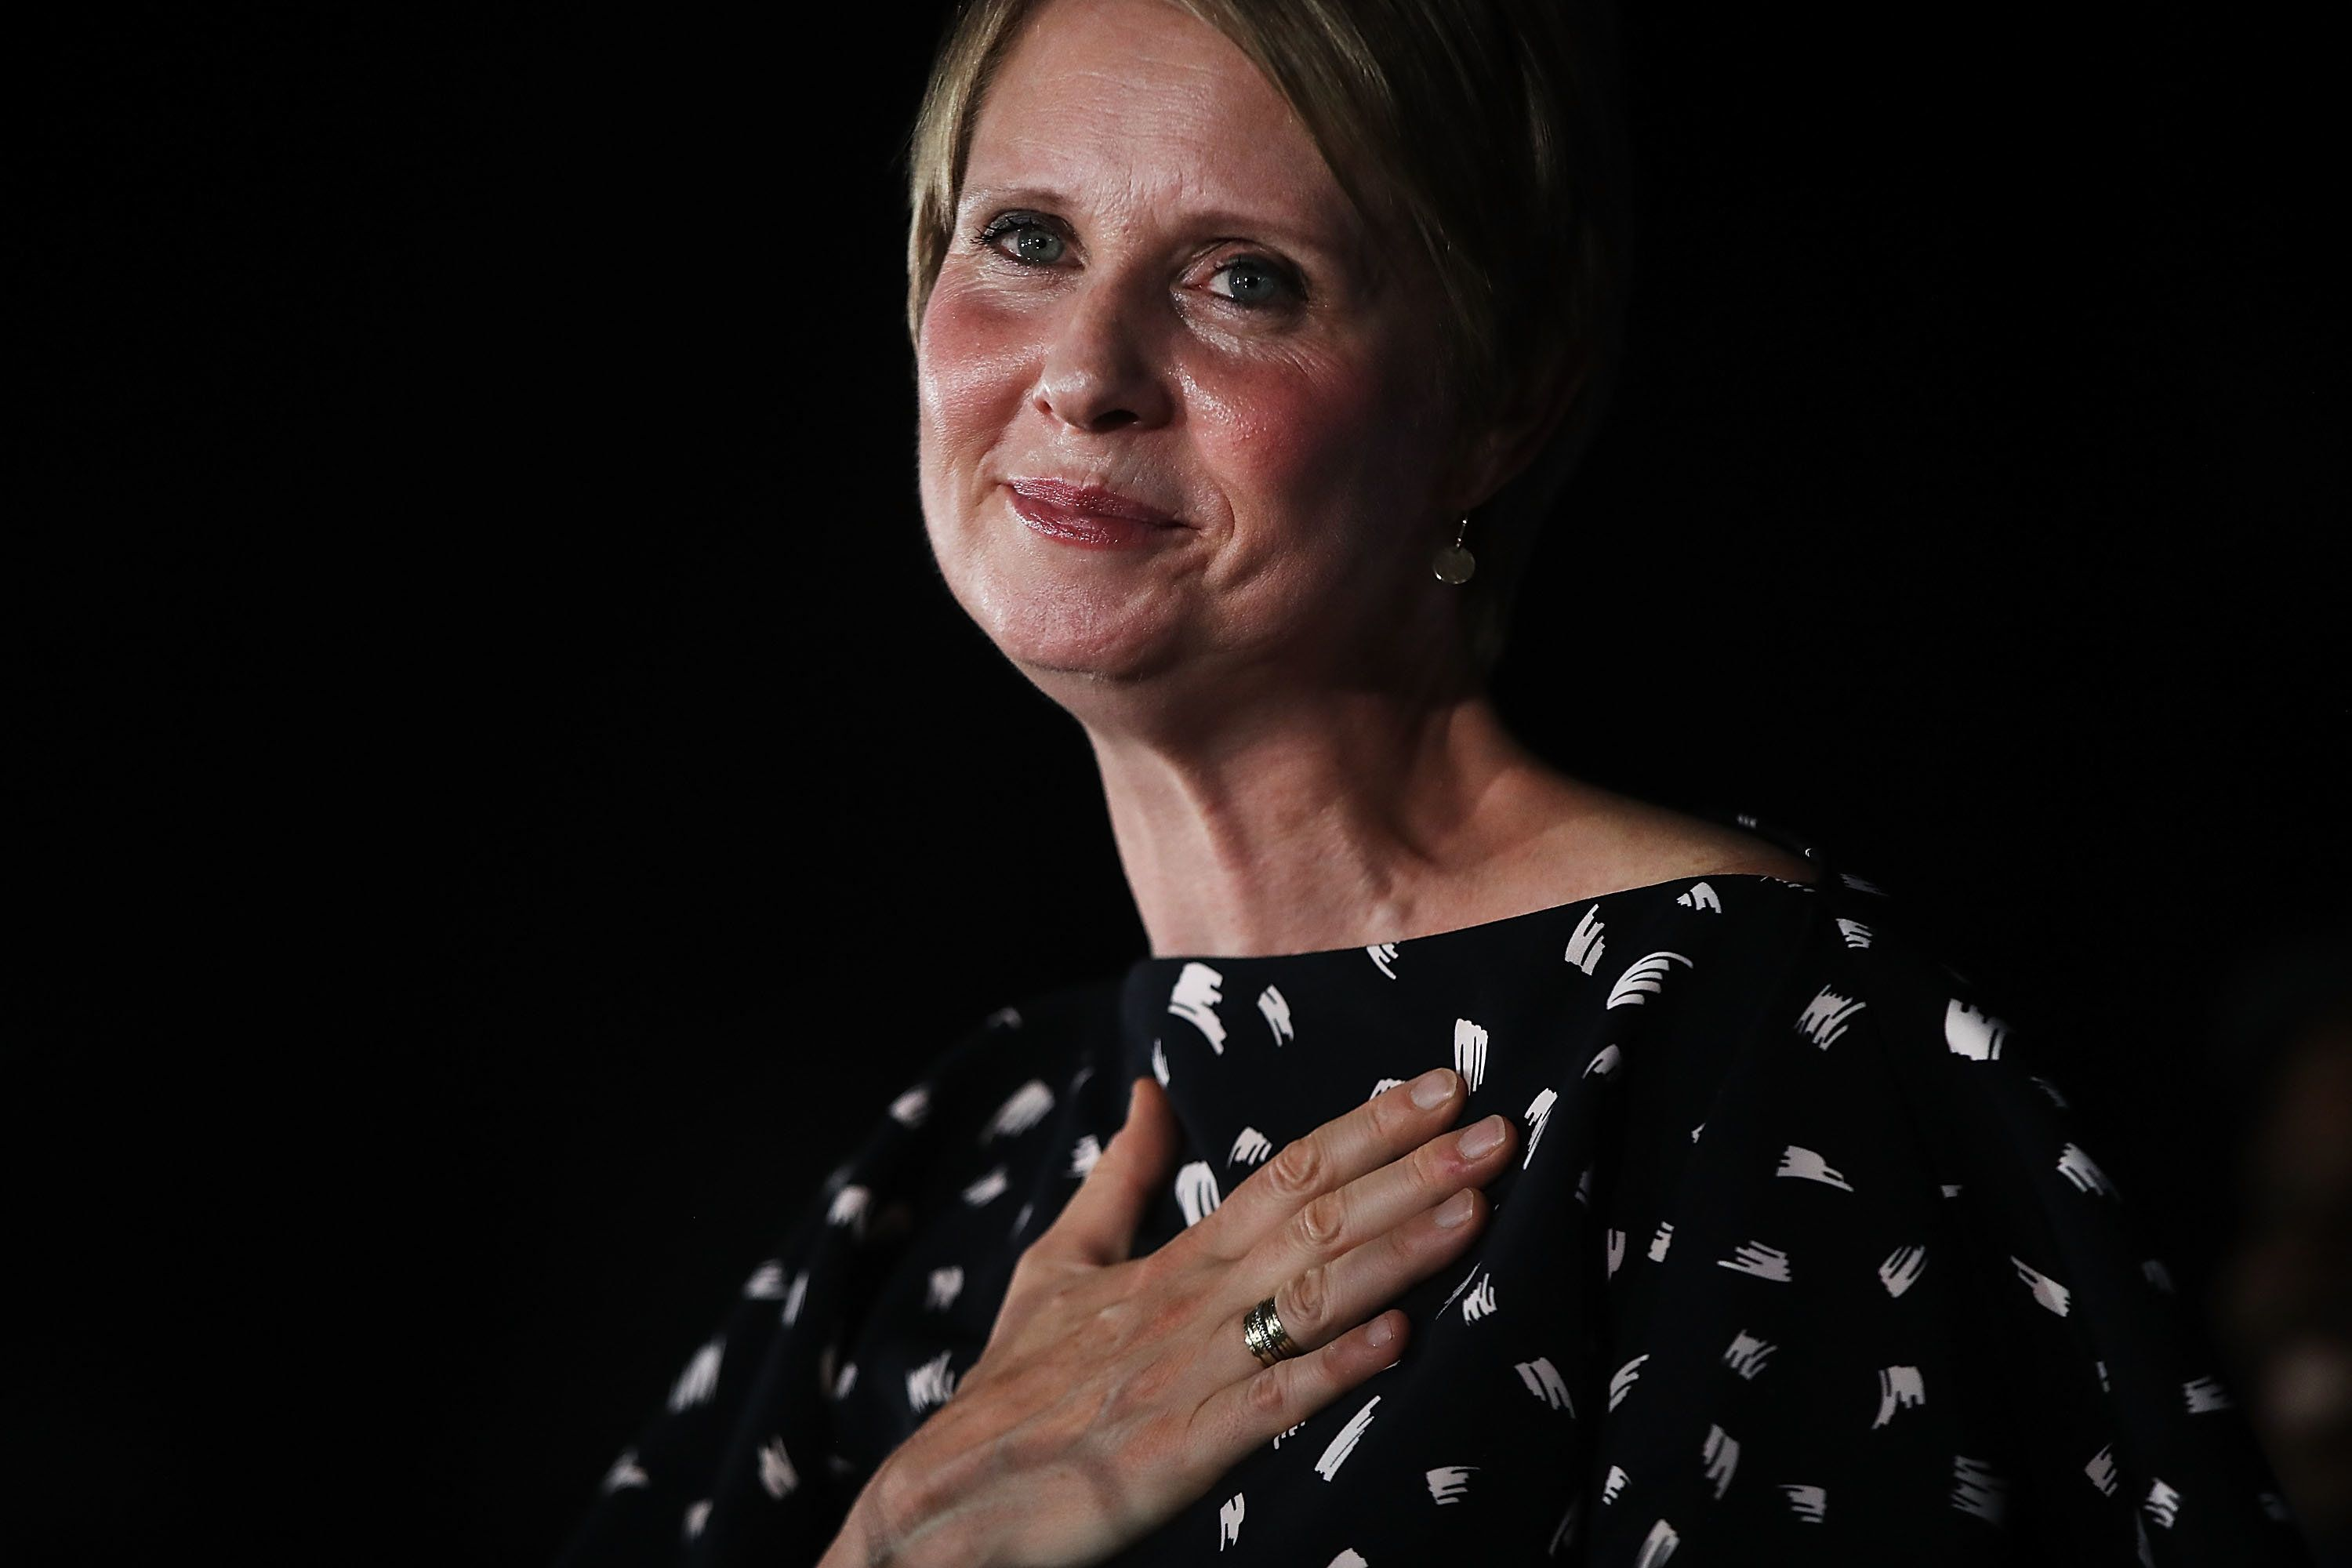 New York gubernatorial hopeful Cynthia Nixon makes a concession speech at a Brooklyn restaurant on Sept. 13, 2018, in New Yor